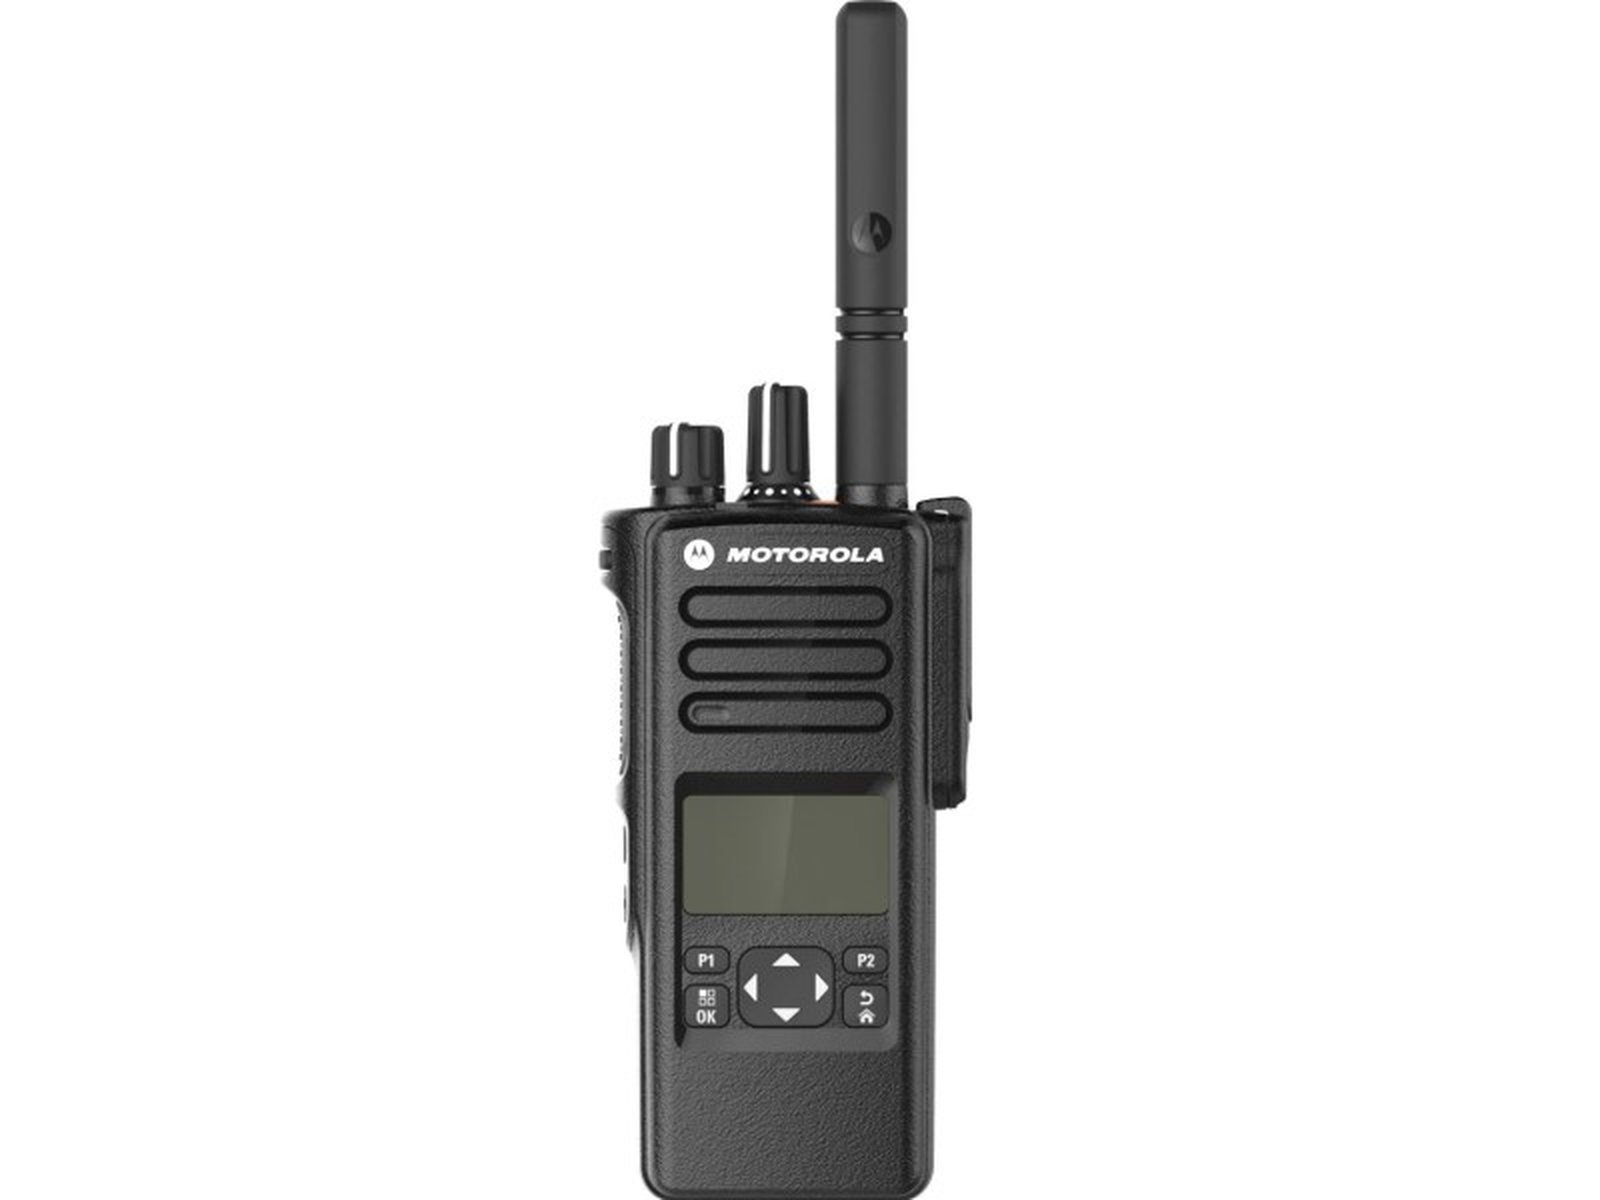 Motorola DP4601e (enhanced) DMR Handfunkgerät GPS